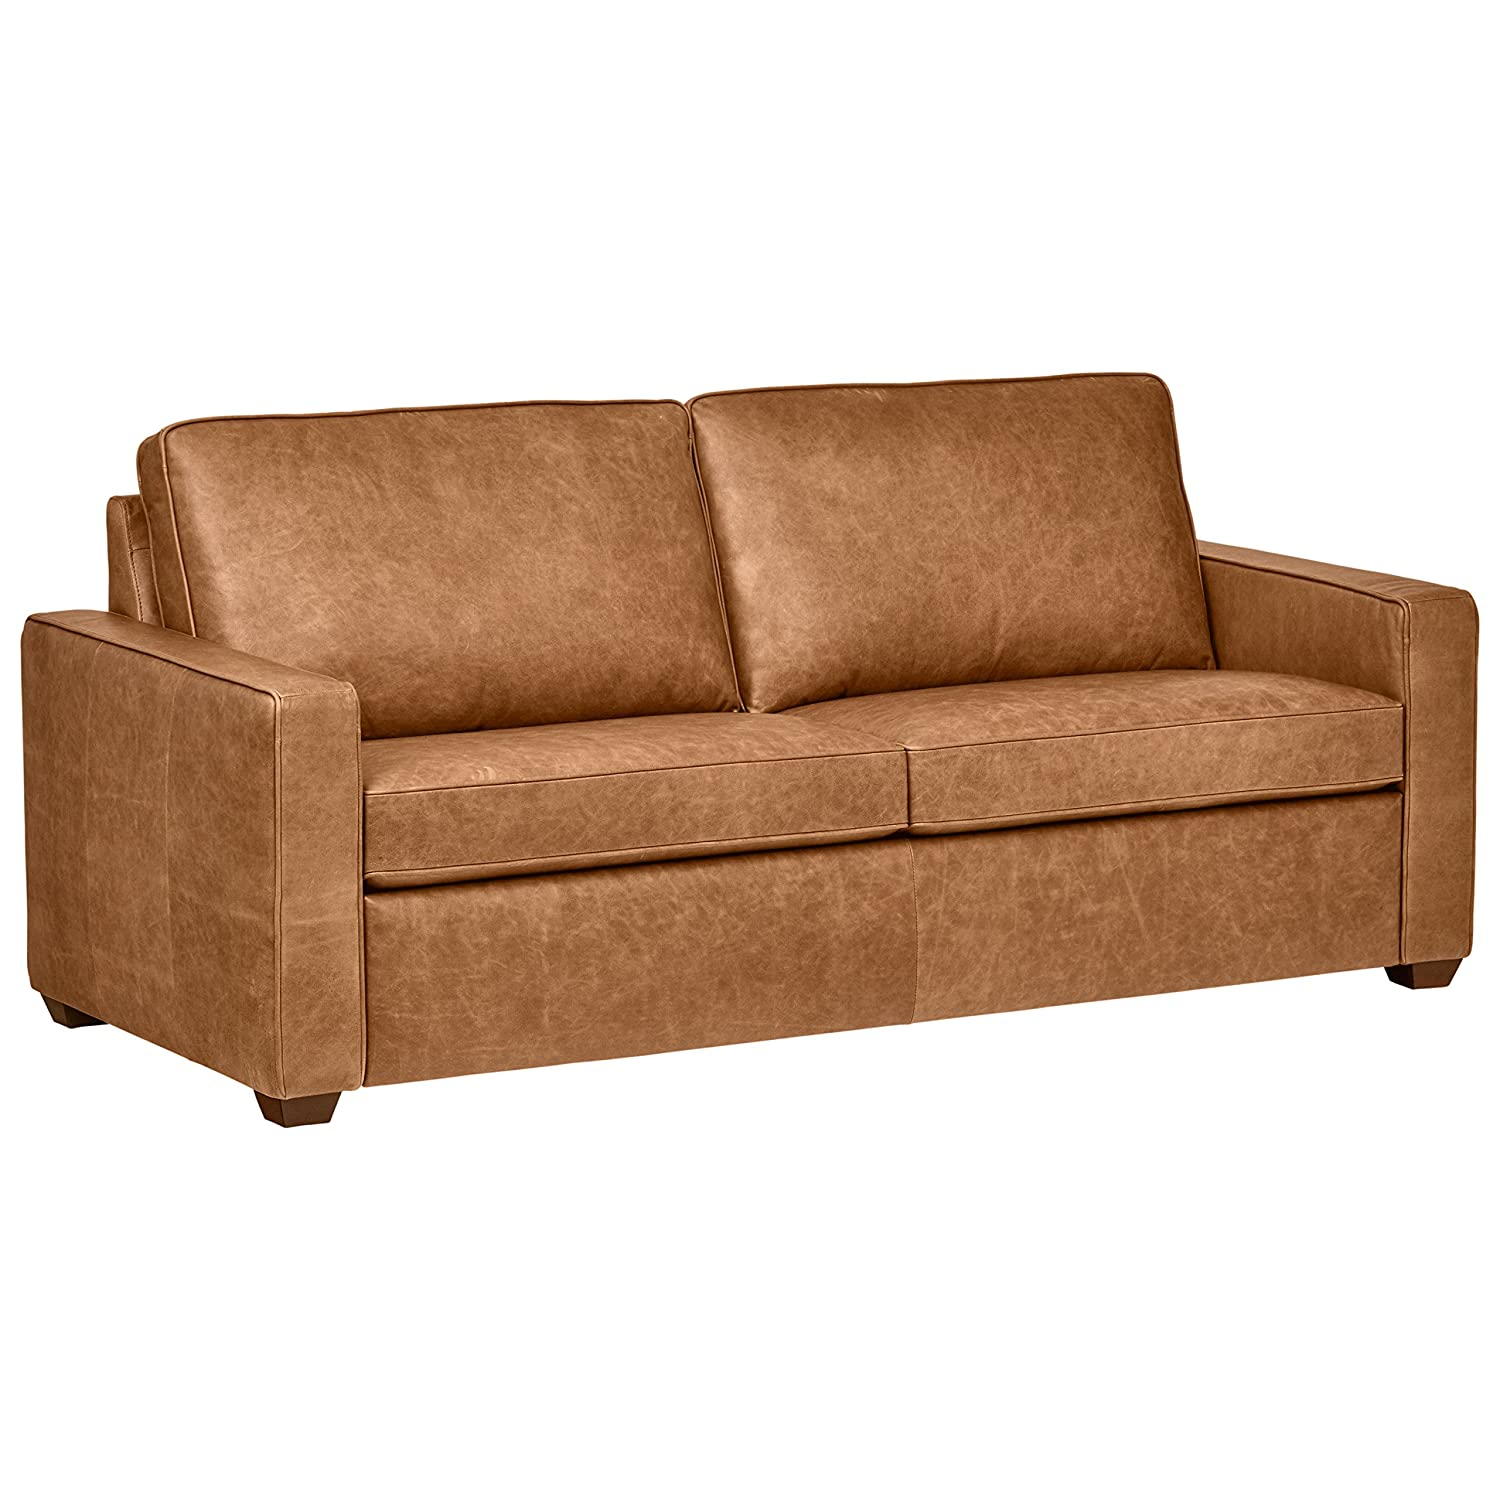 Rivet Top-Grain Leather Sofa – Andrews, Modern Classic, 82\